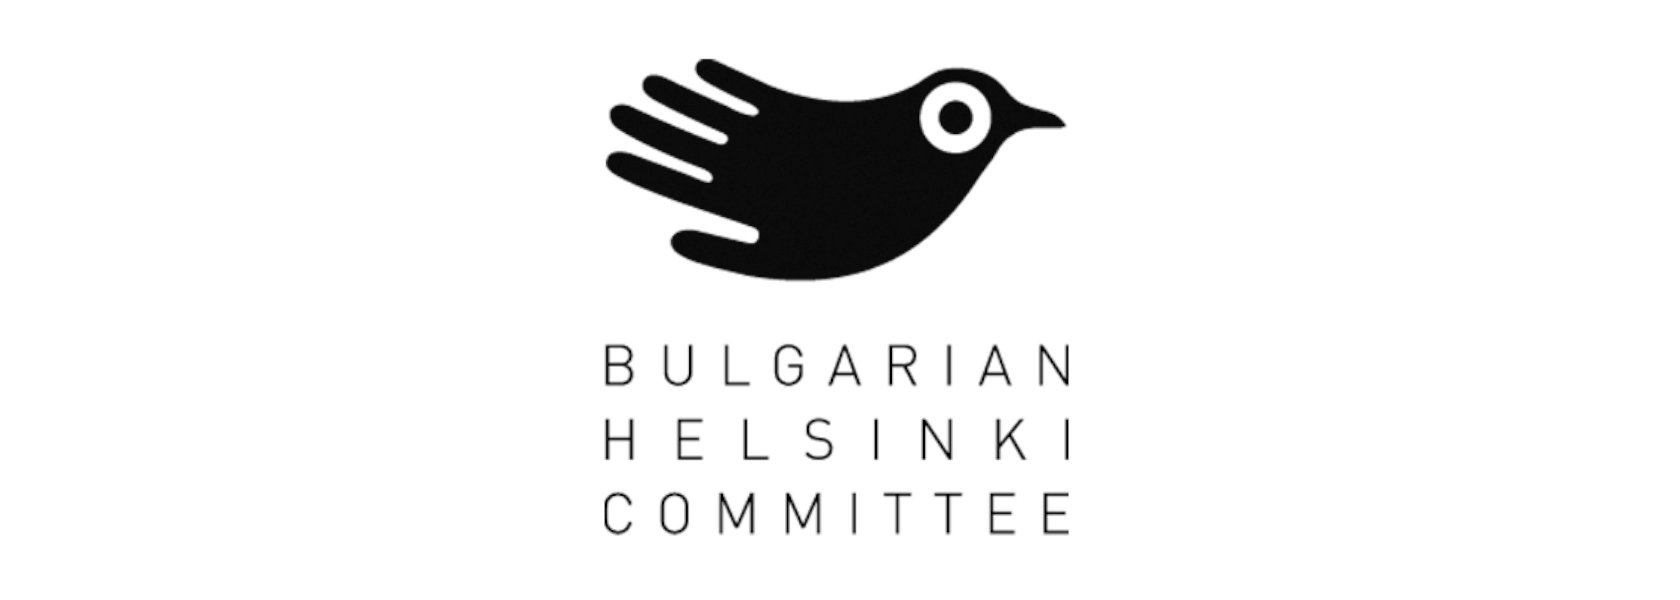 Open letter : Reaction of France to the request of dissolution targetting the Bulgarian Helsinki Committee